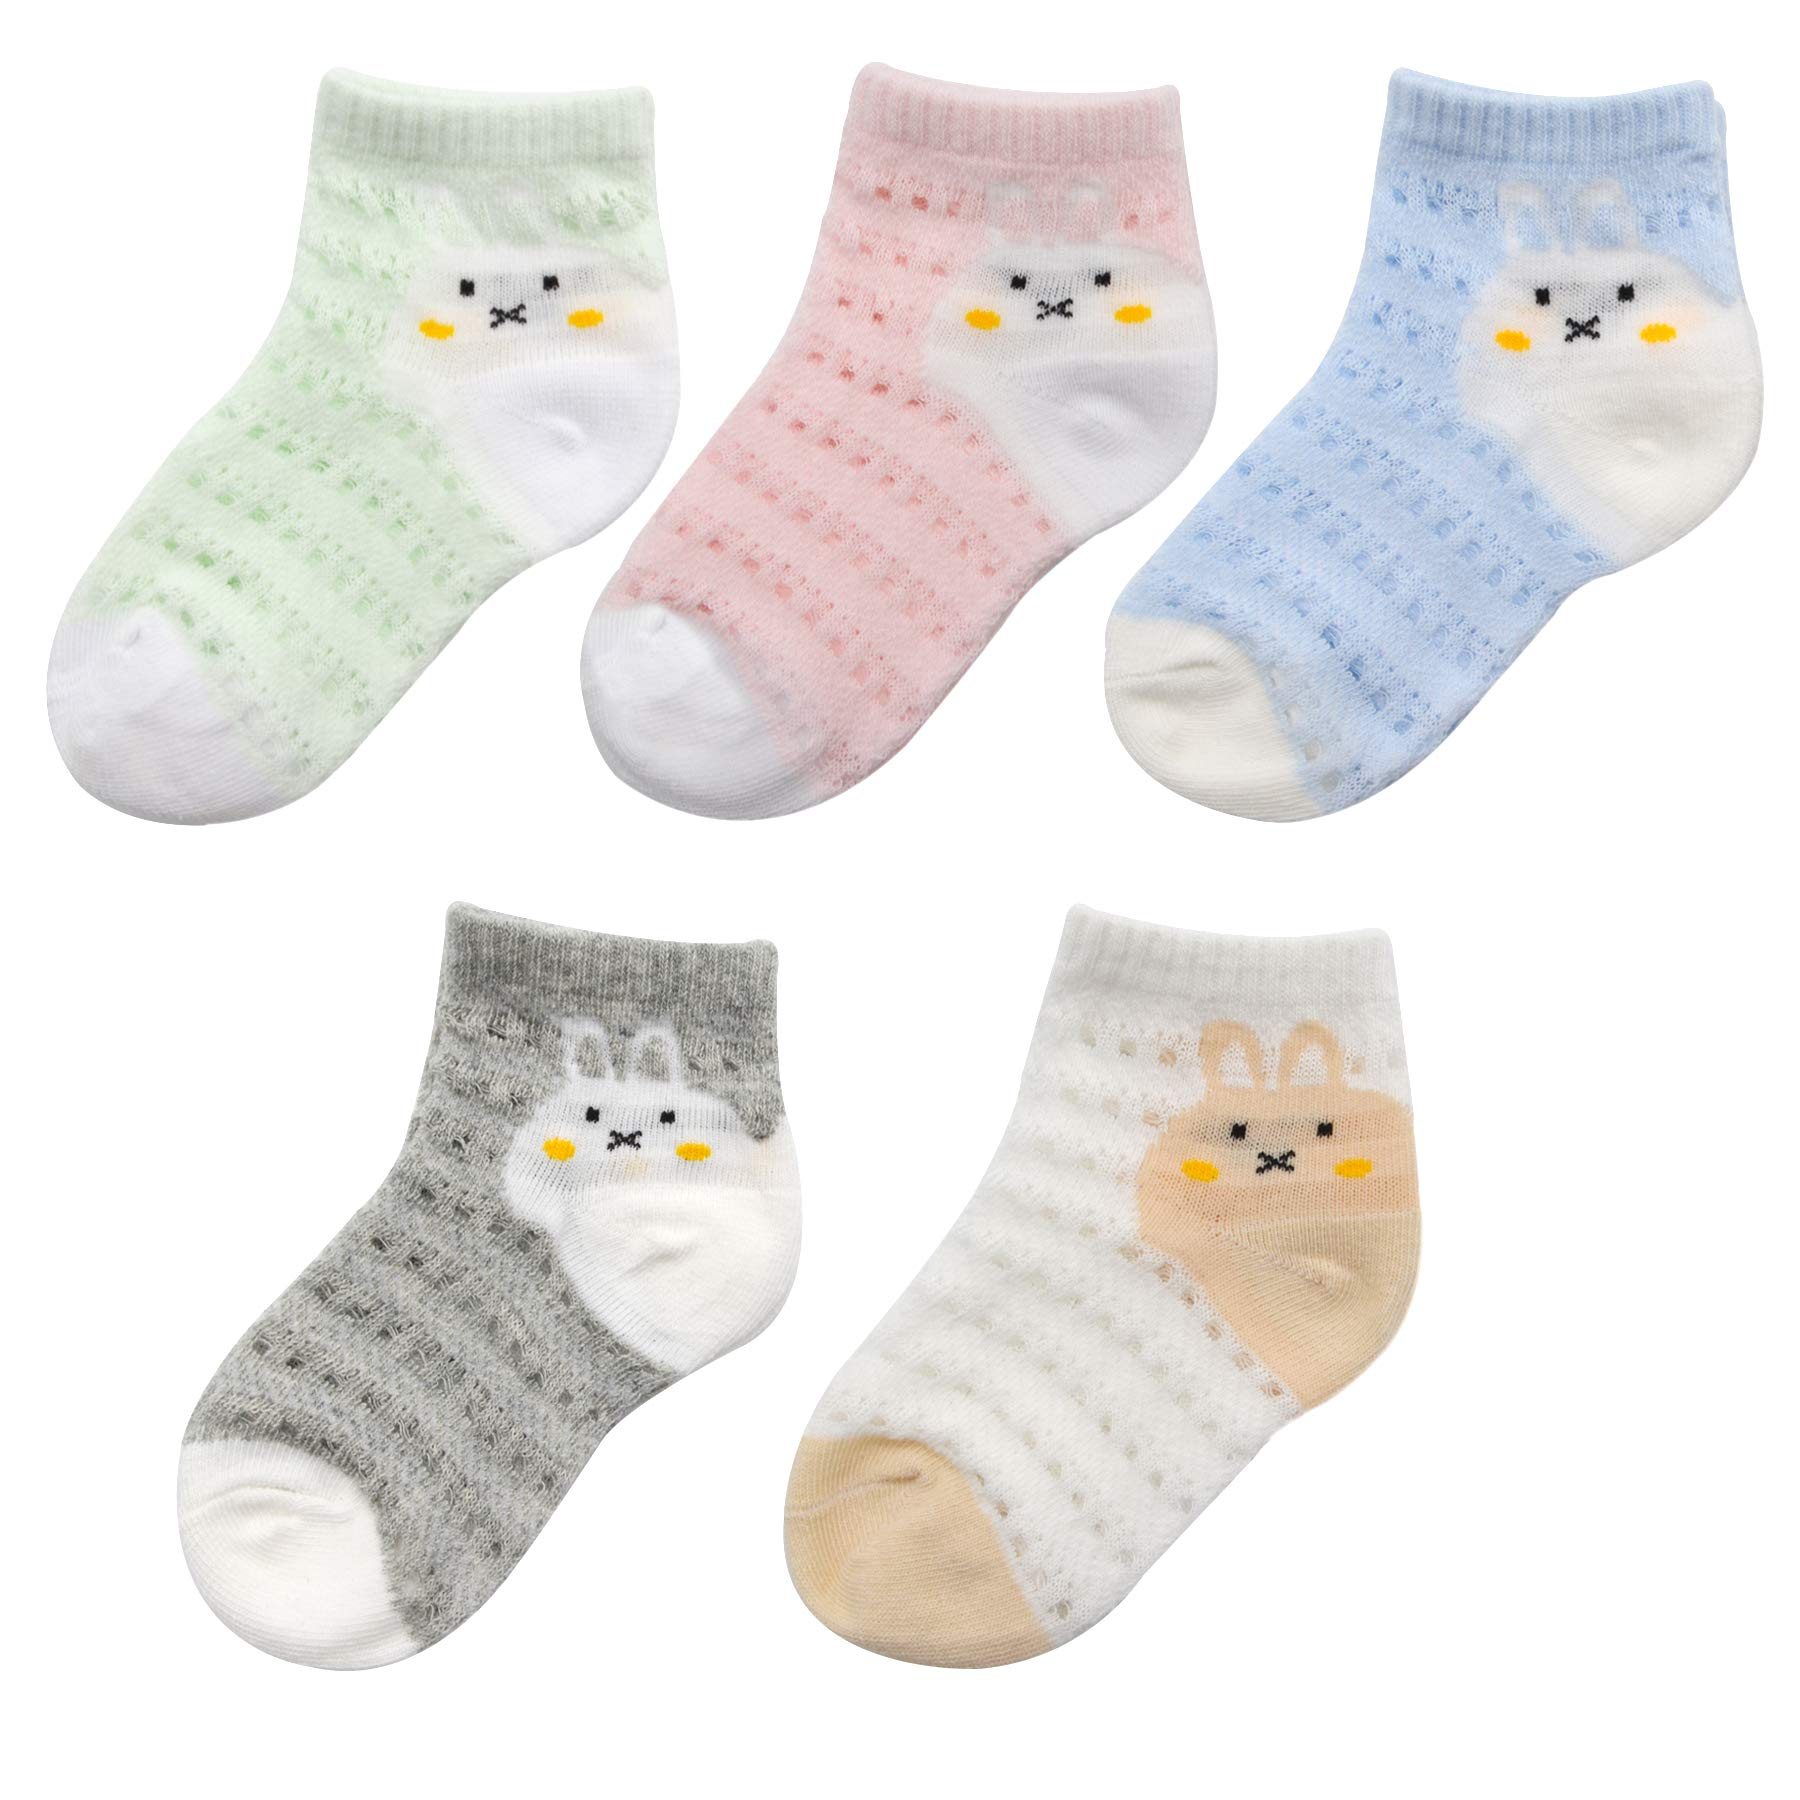 5 Pairs Kids Girls Cute Super Cool Animal Cotton Ankle Thin Mesh Socks, 2-4T